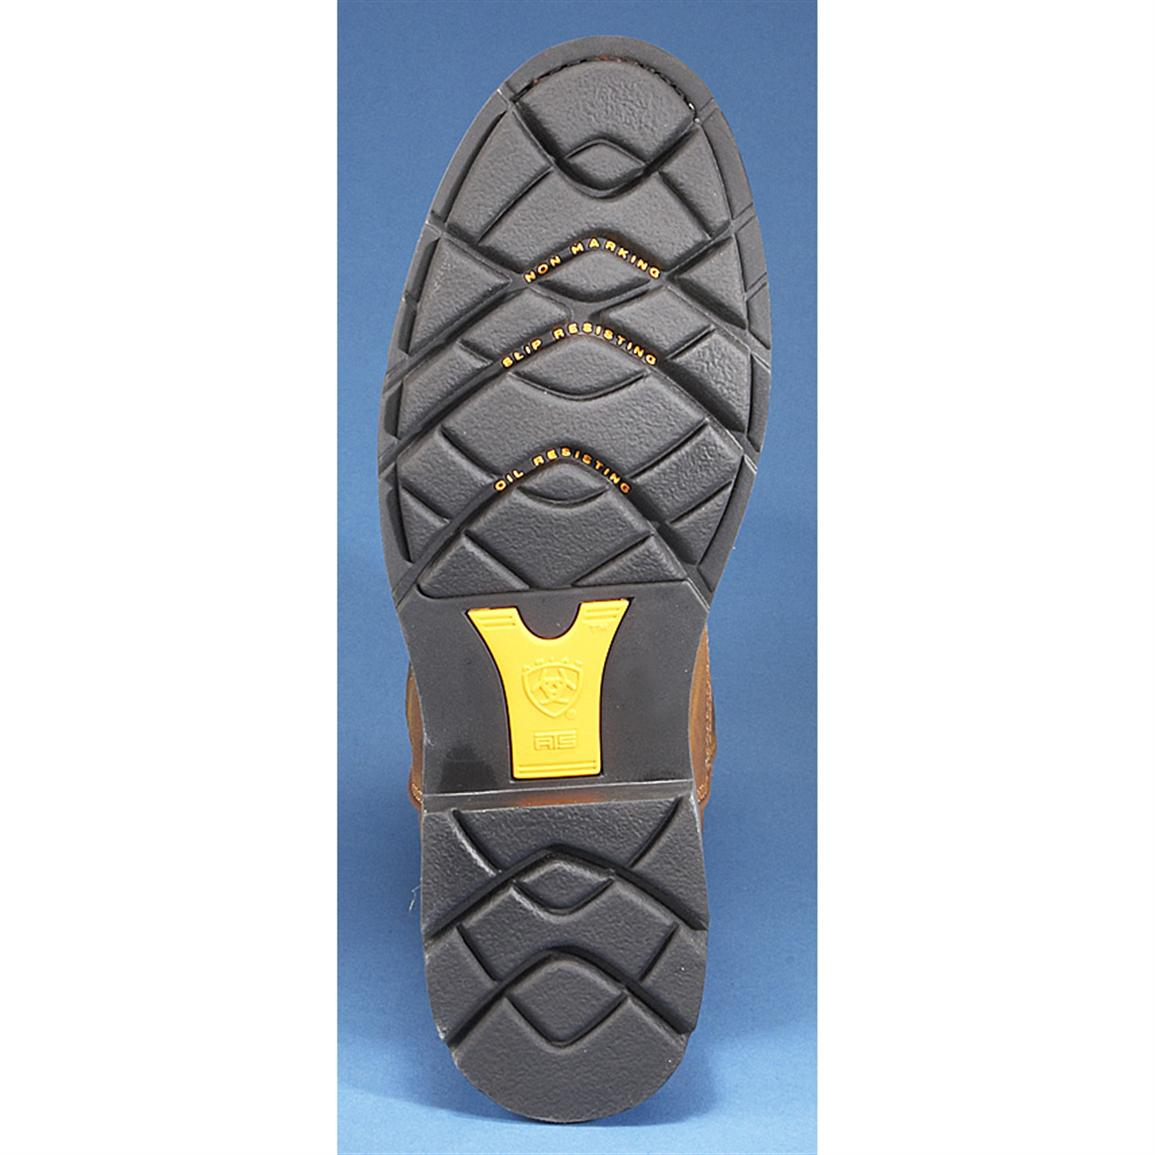 Abrasion-resistant rubber outsole